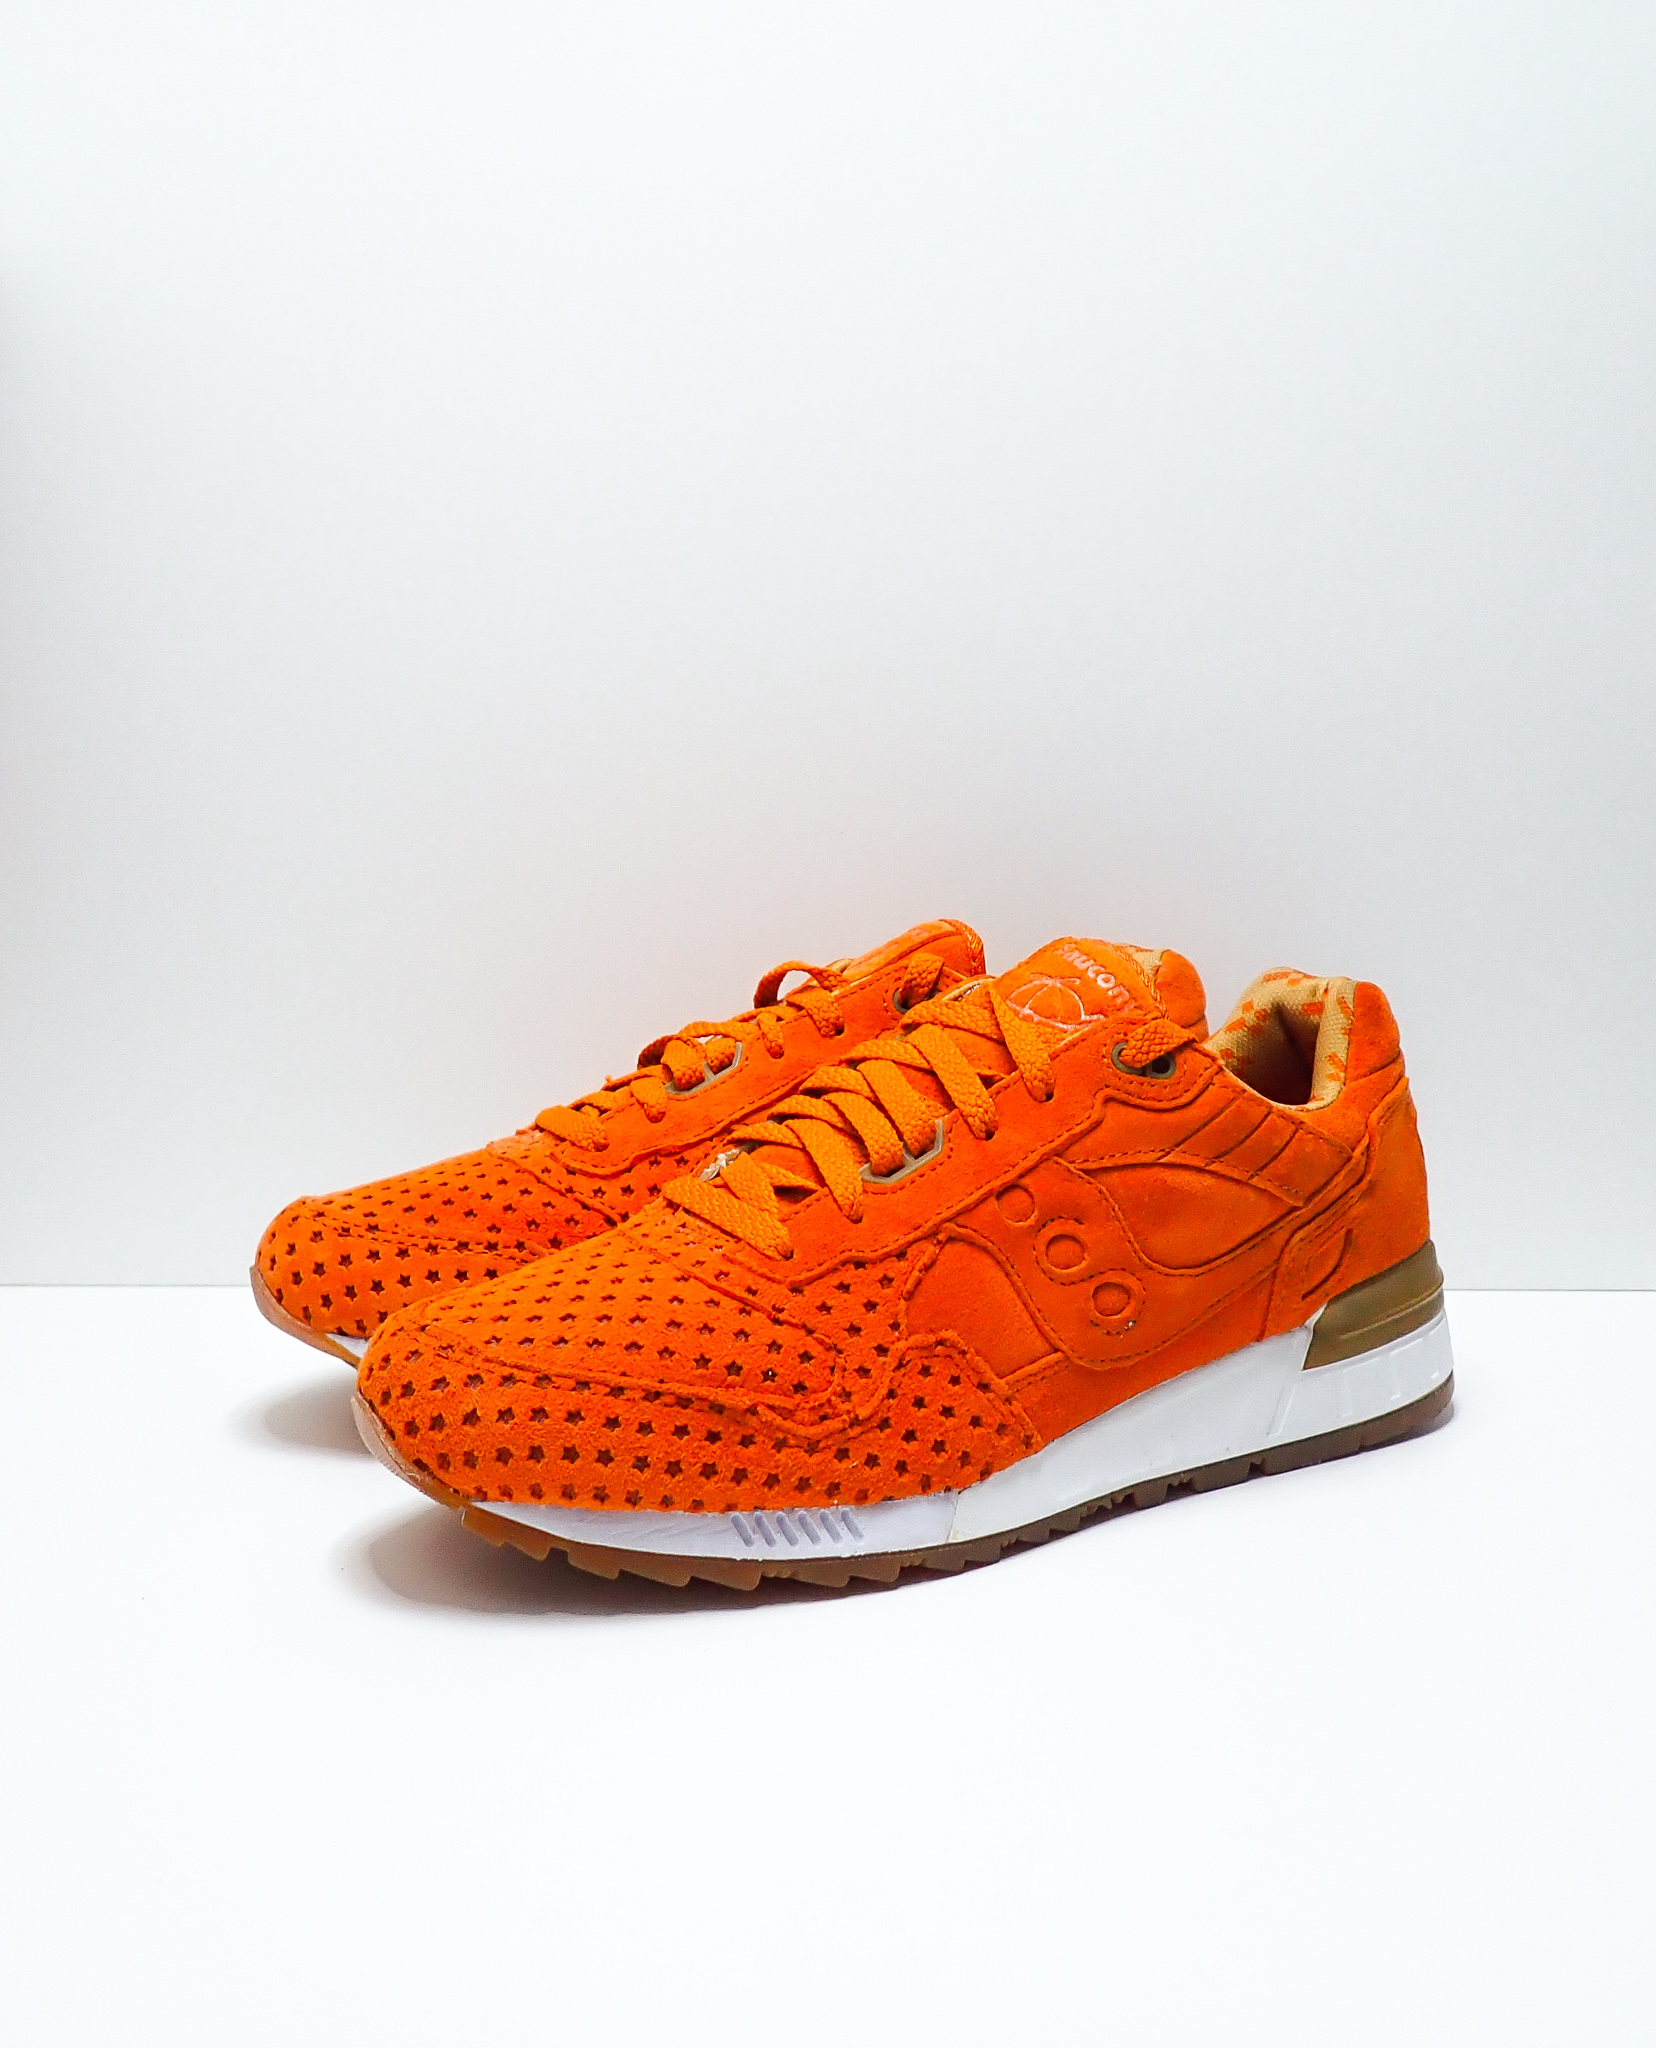 Saucony Shadow 5000 x Play Cloths Strange Fruit Pack (Orange)